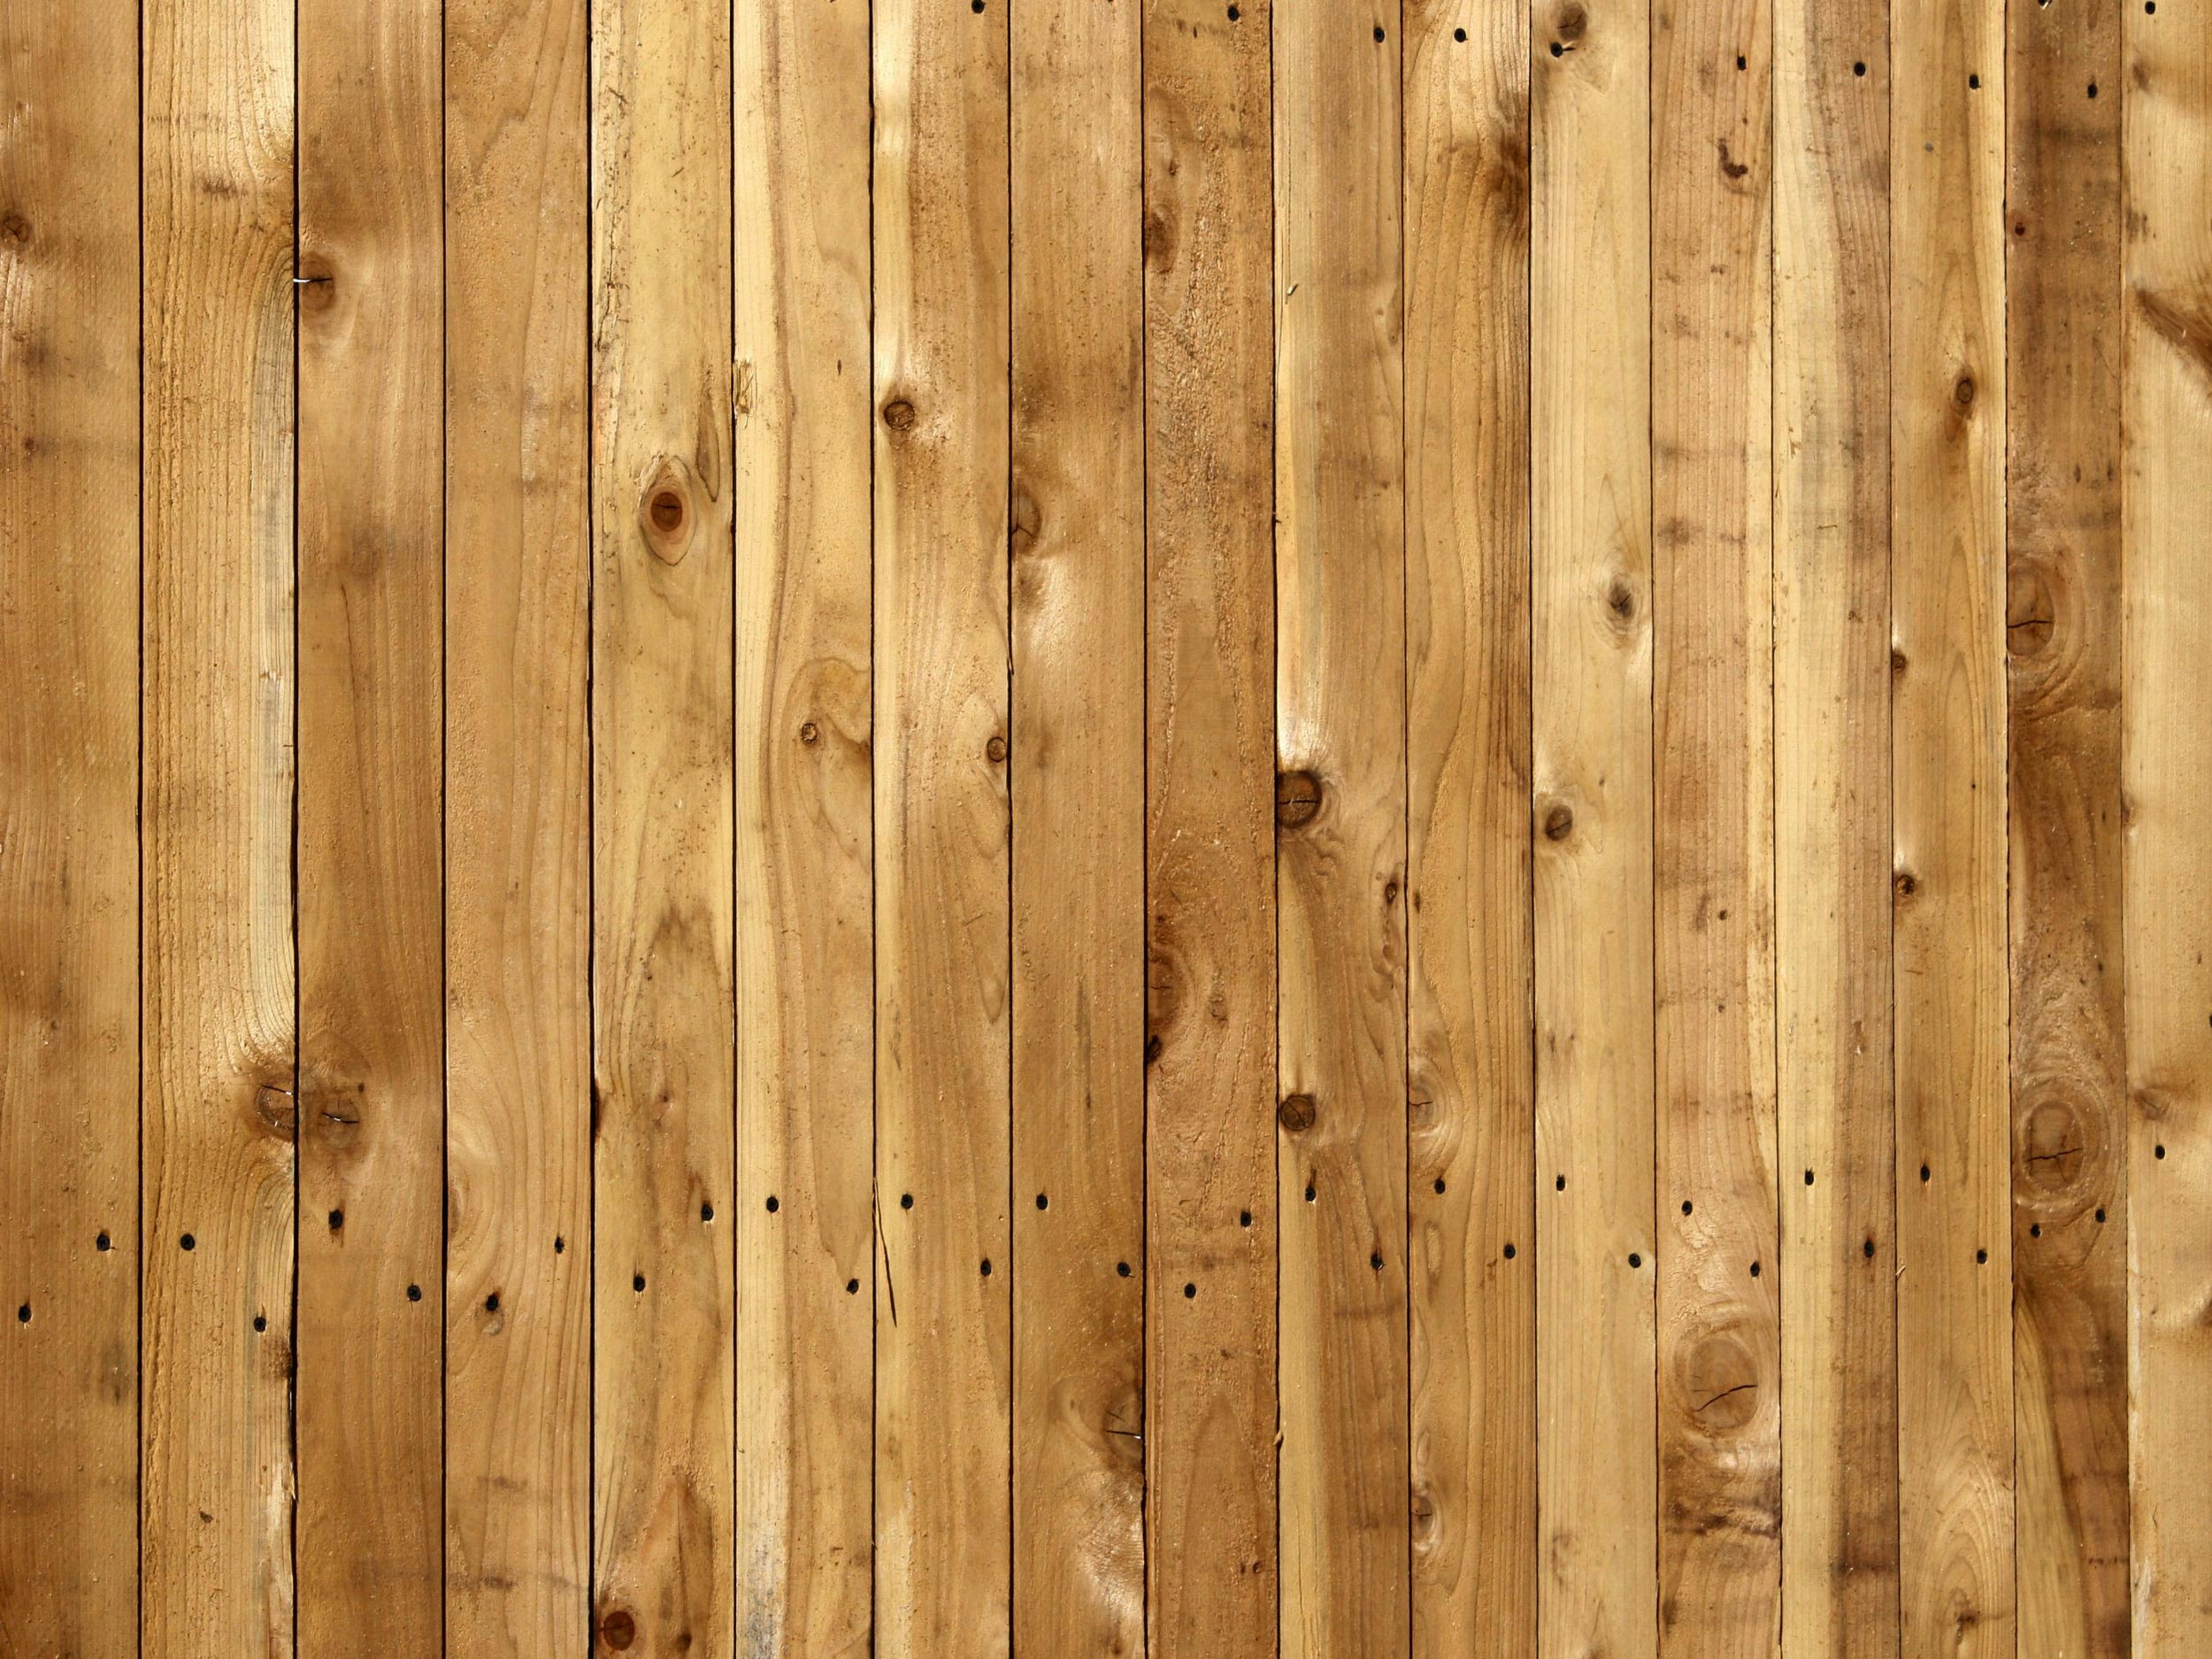 Wood-Background-Images